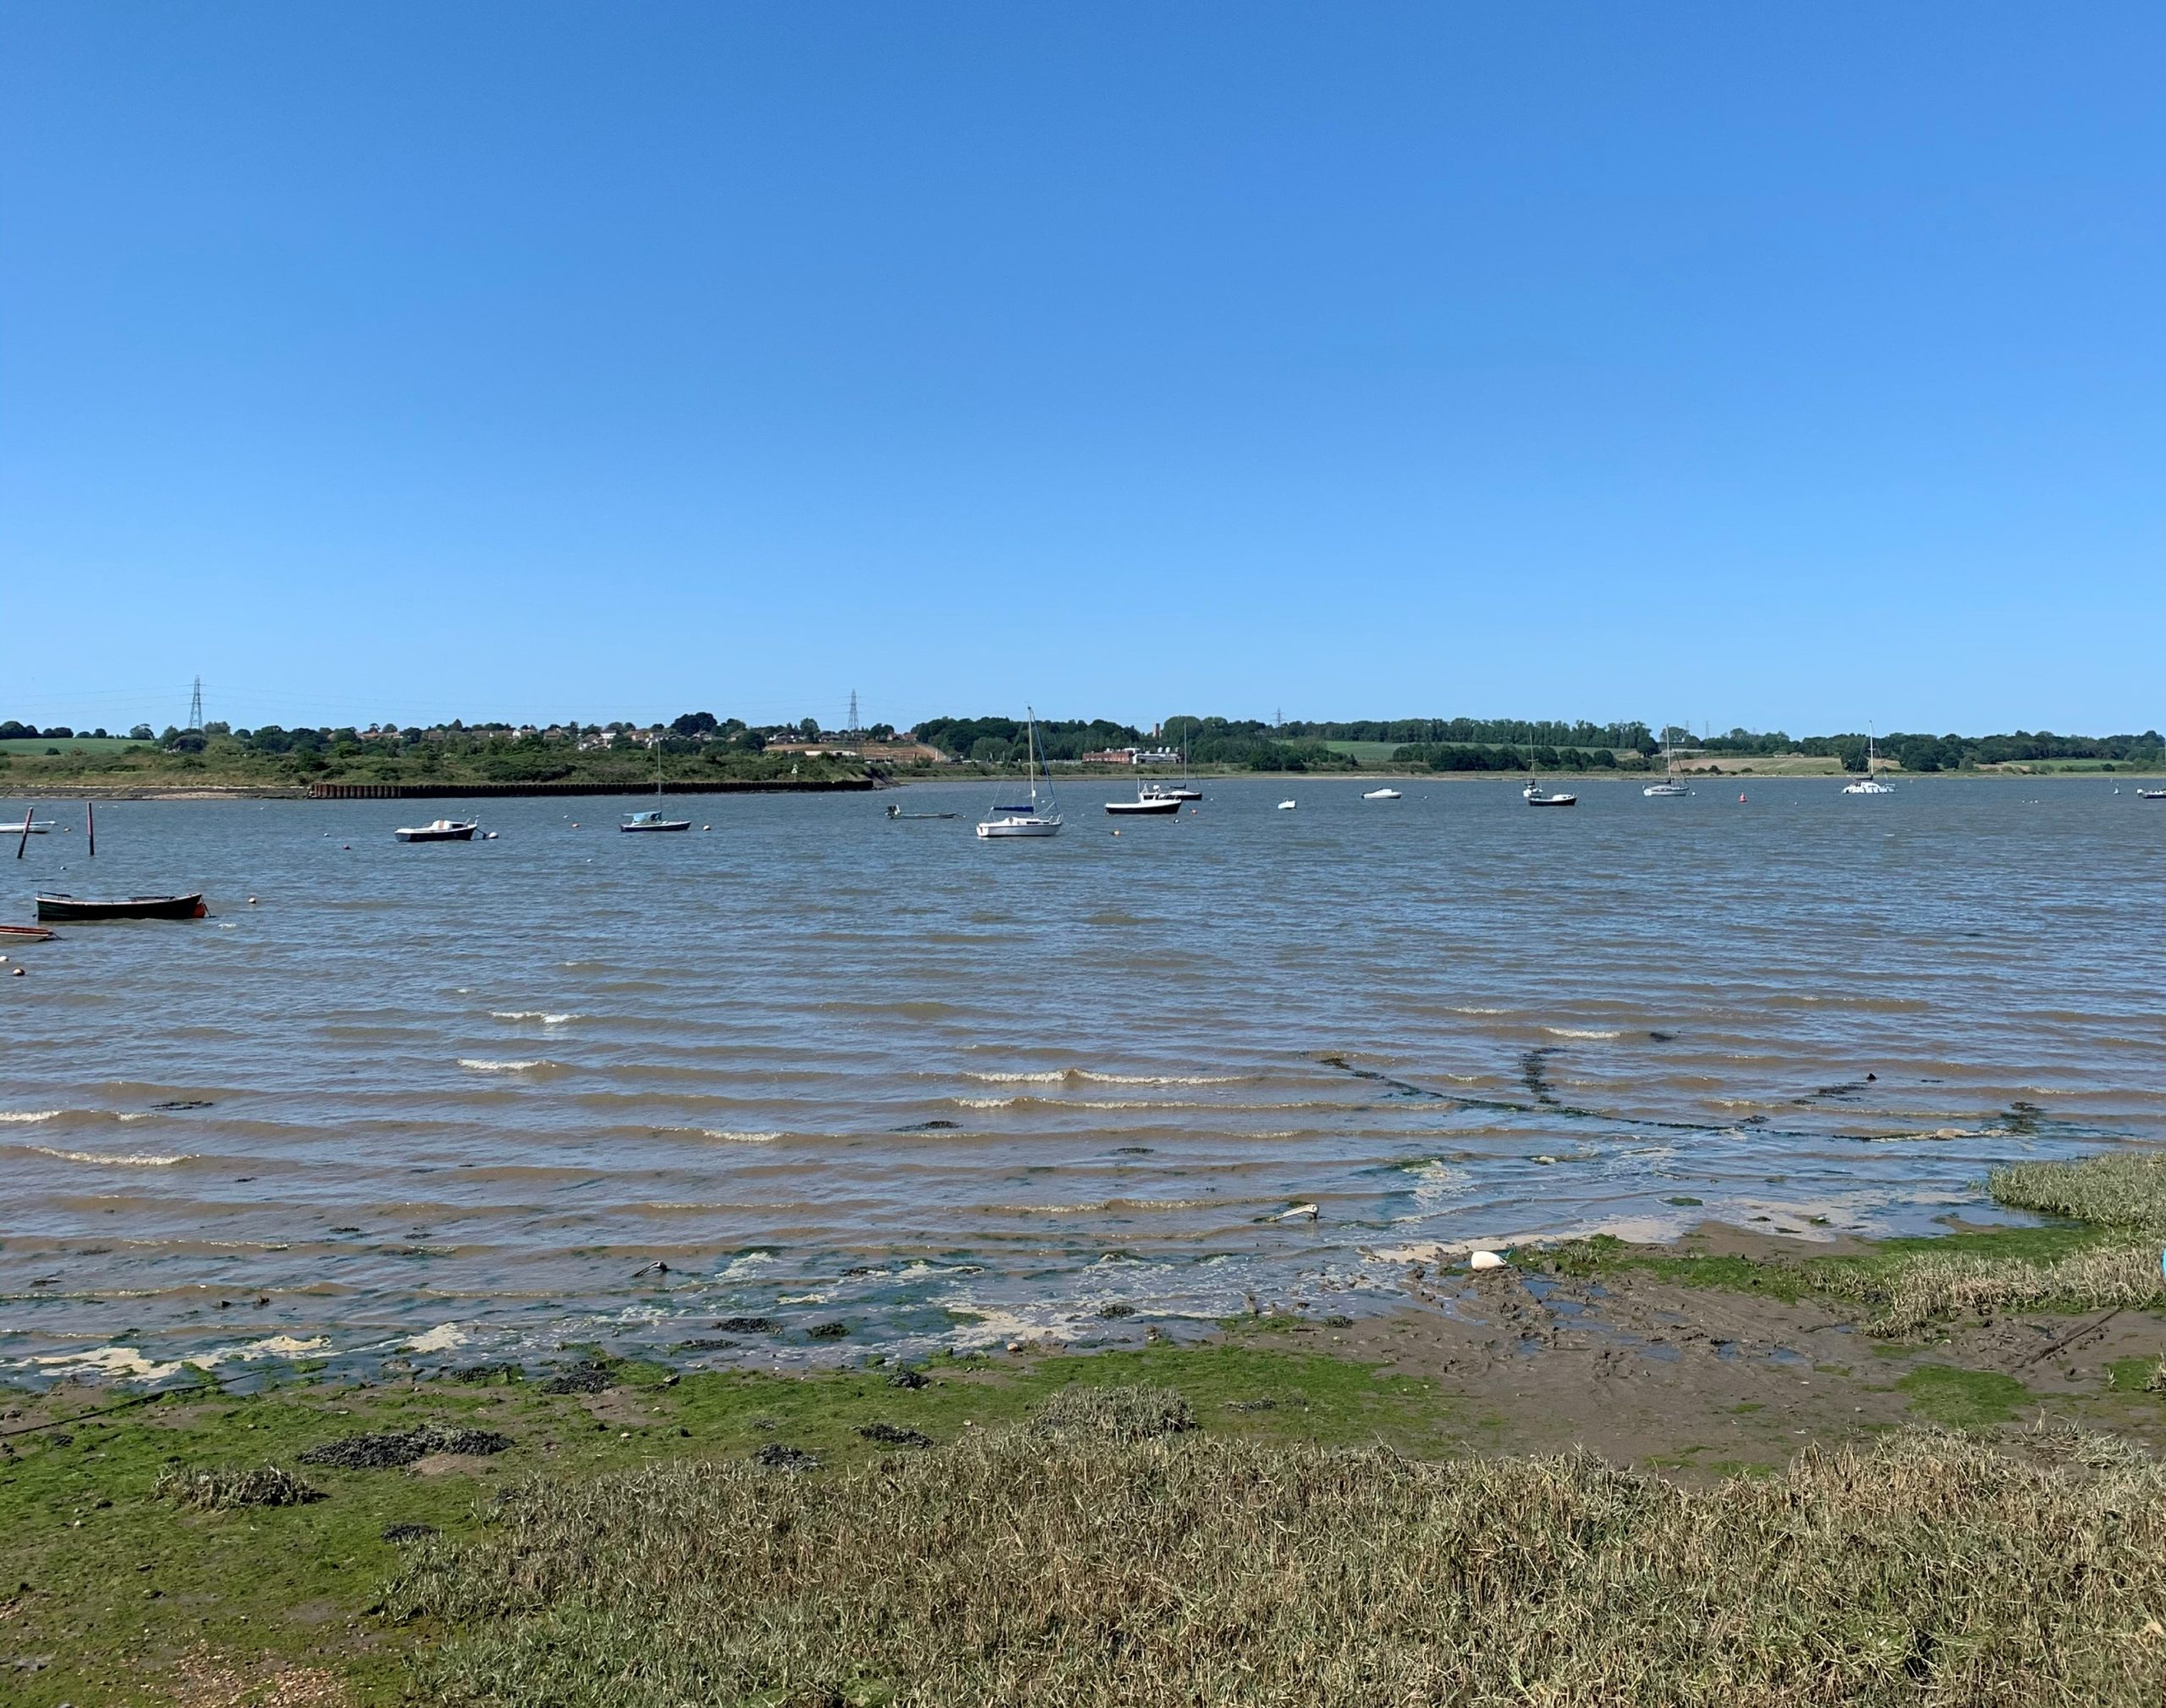 The River Stour at Mistley, with blue skies and boats on the water